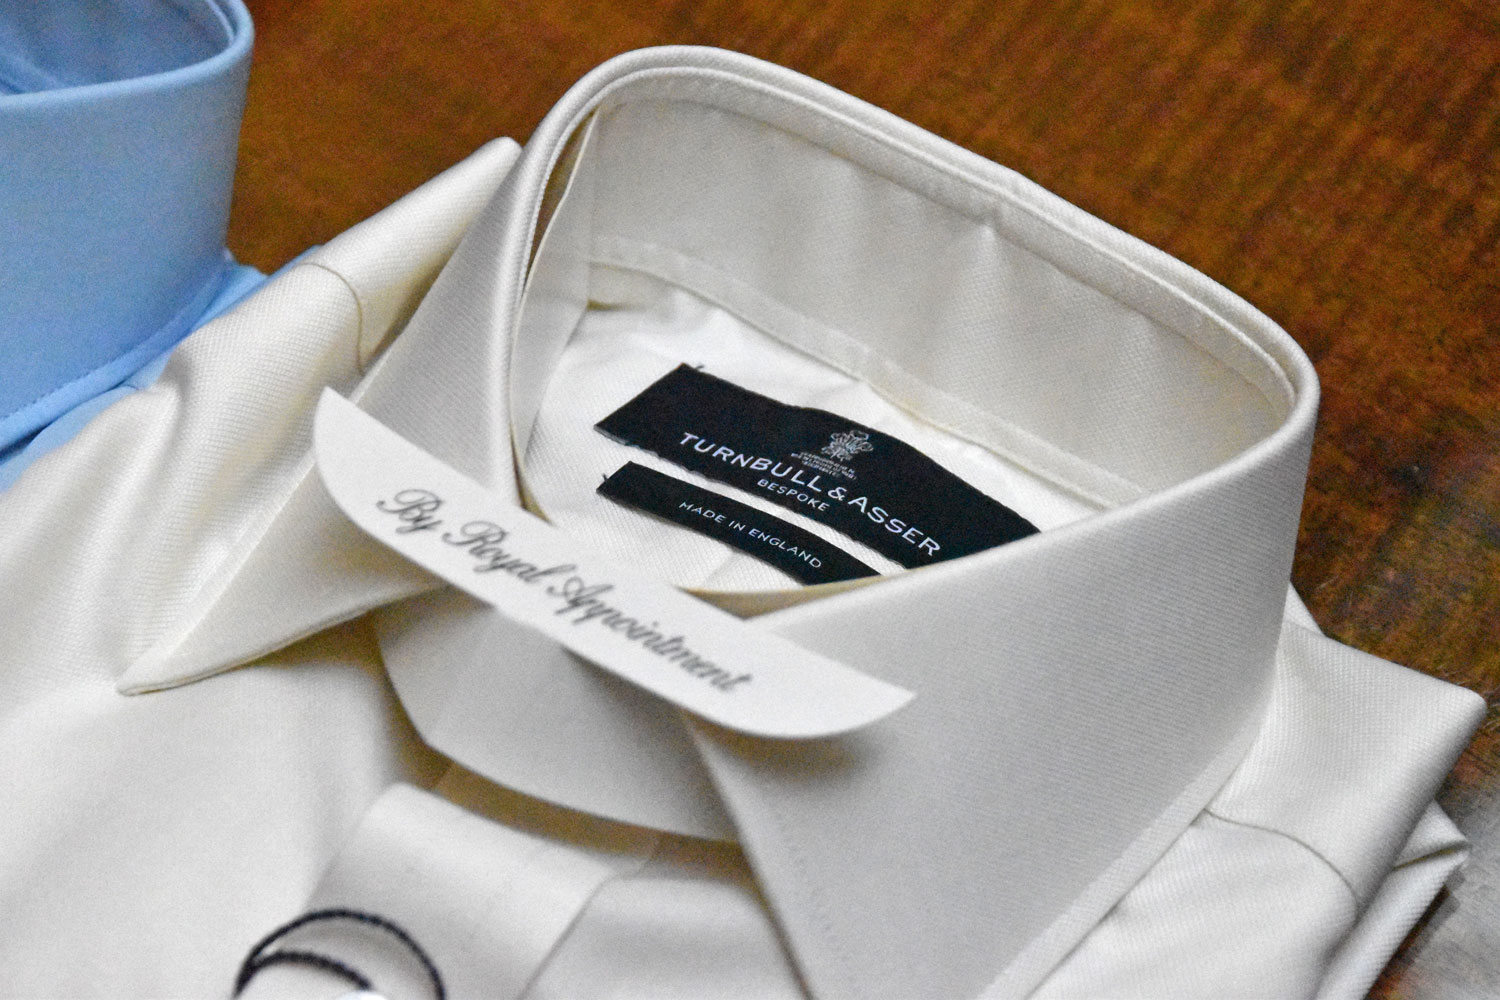 bespoke shirts by royal appointment